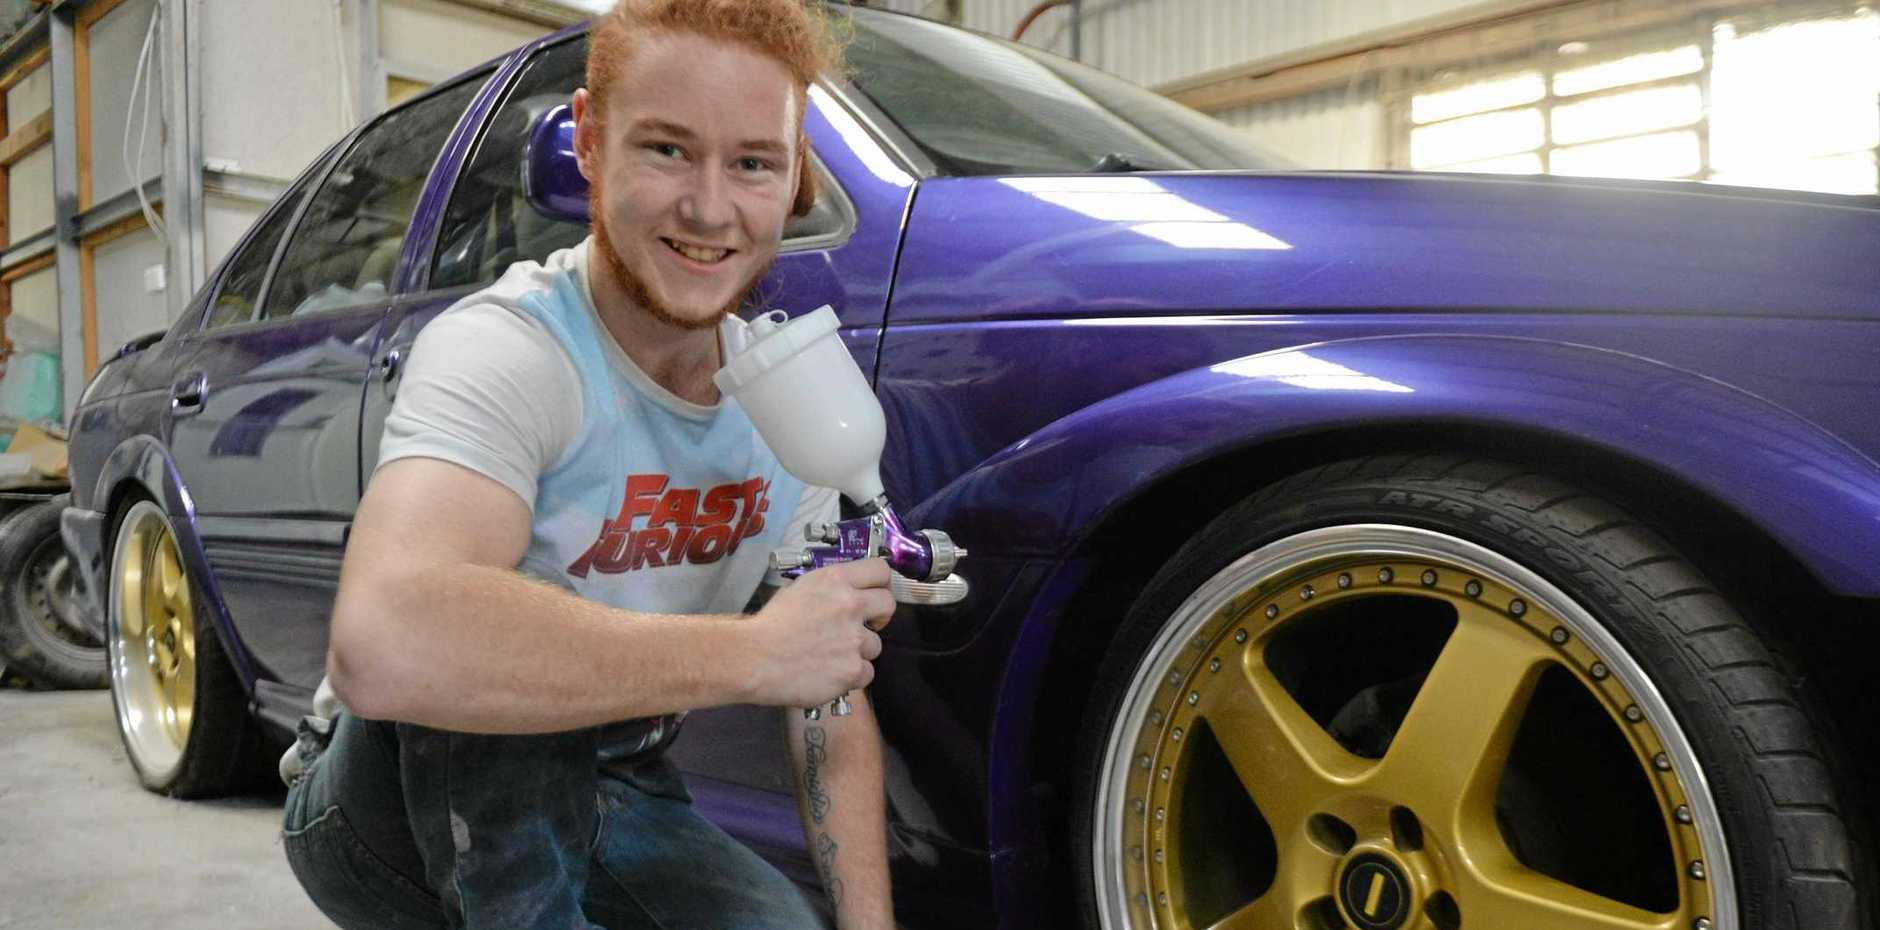 Fleet Image Mackay apprentice Aaron Surian, 18, with a purple EB GT mockup Ford. The Ford's purple paint is the 15th most popular shade for cars in the Mackay, Whitsunday and Isaac region.